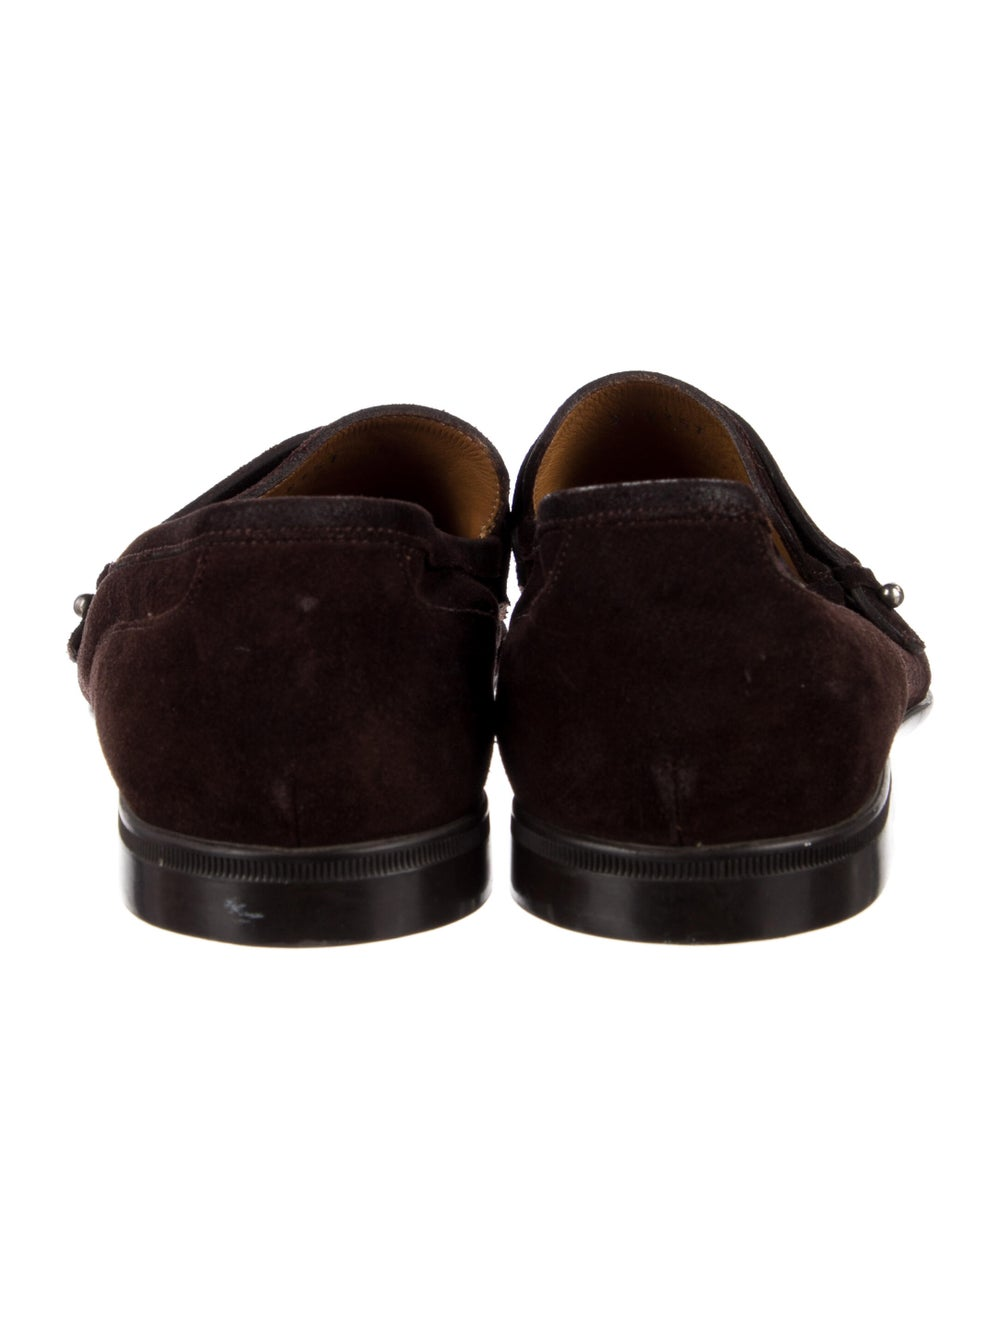 Gucci Suede Loafers Brown - image 4